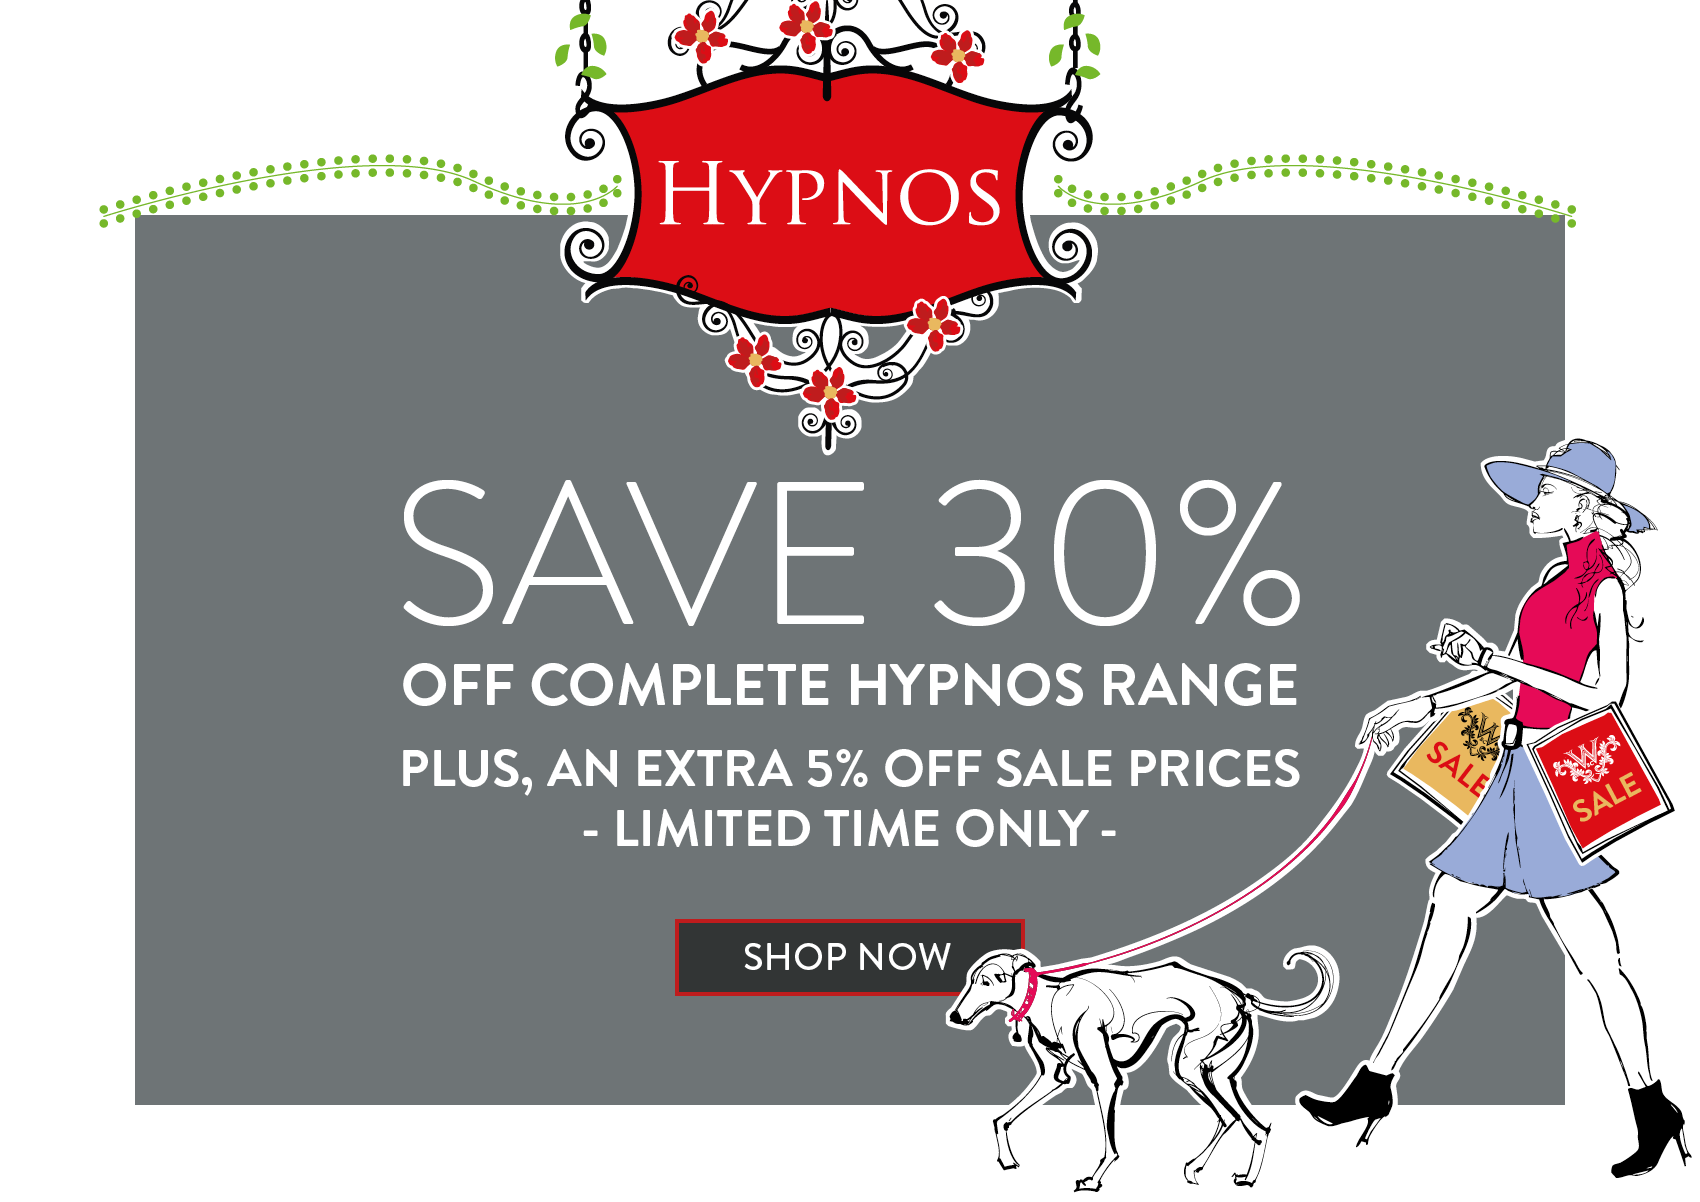 SAVE 30% OFF COMPLETE HYPNOS RANGE PLUS, AN EXTRA 5% OFF SALE PRICES - LIMITED TIME ONLY -